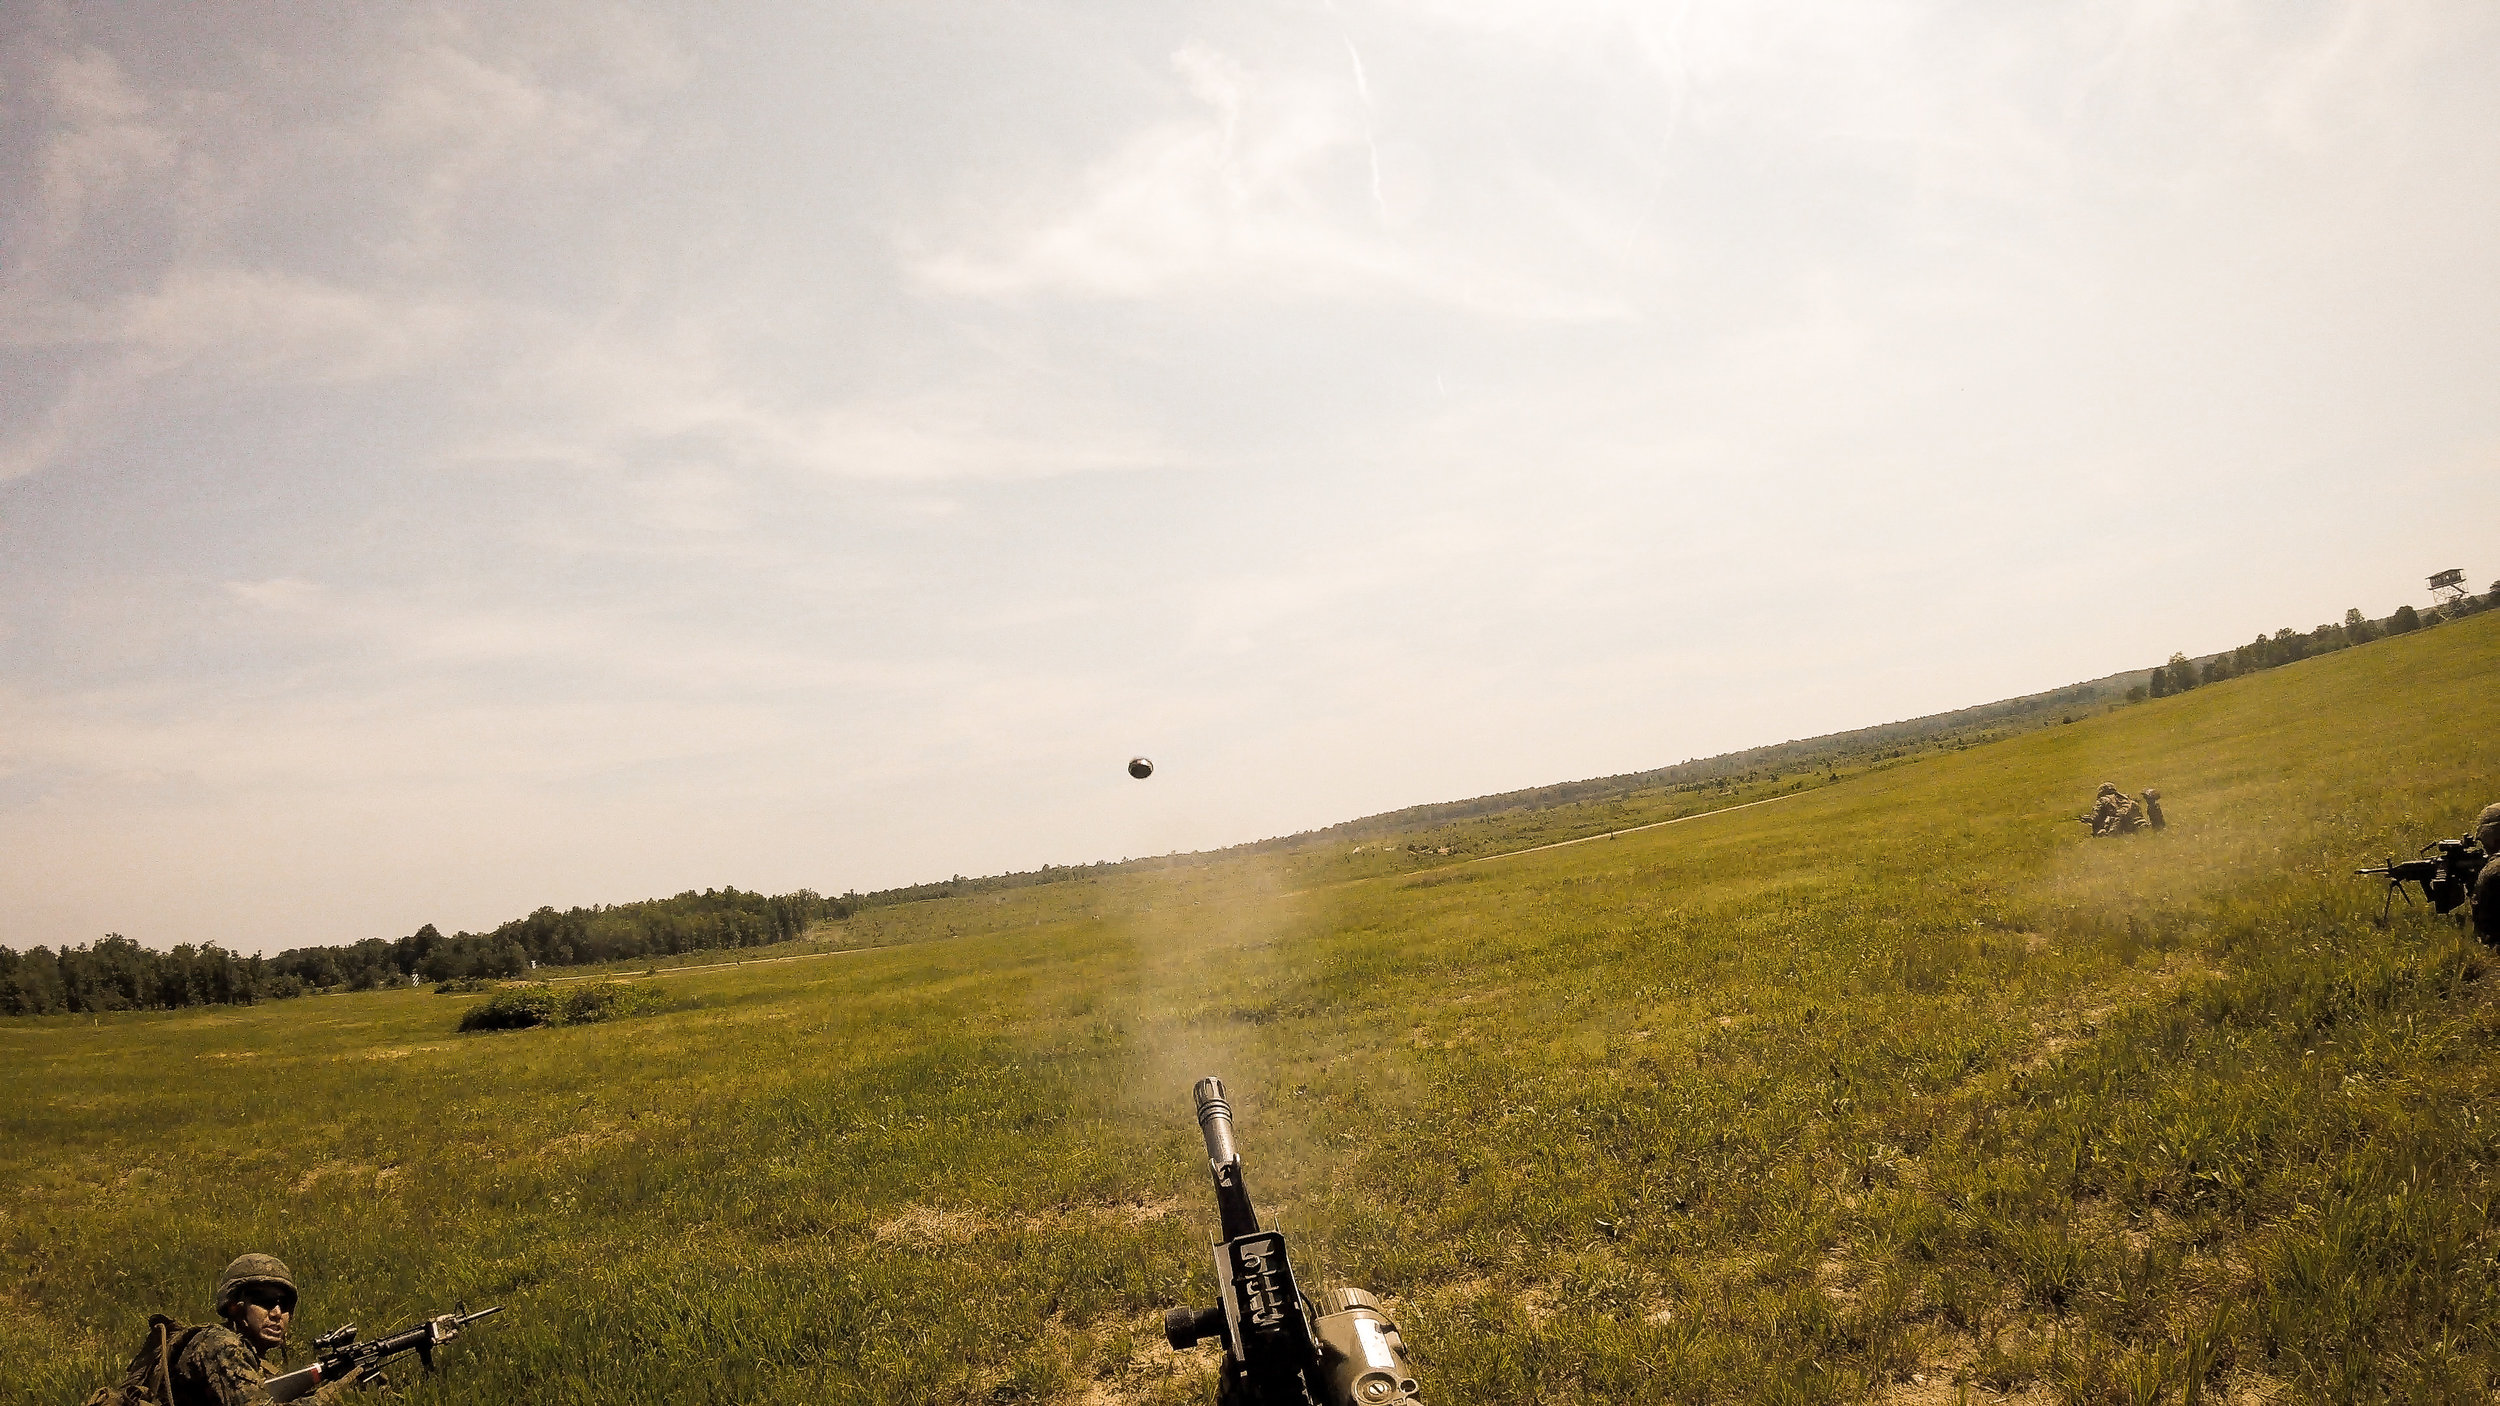 I'm pretty proud of this photo from a TBS live fire range that I took off my GoPro. The military training that I had the opportunity to experience this past year was beyond anything I could have ever imagined.